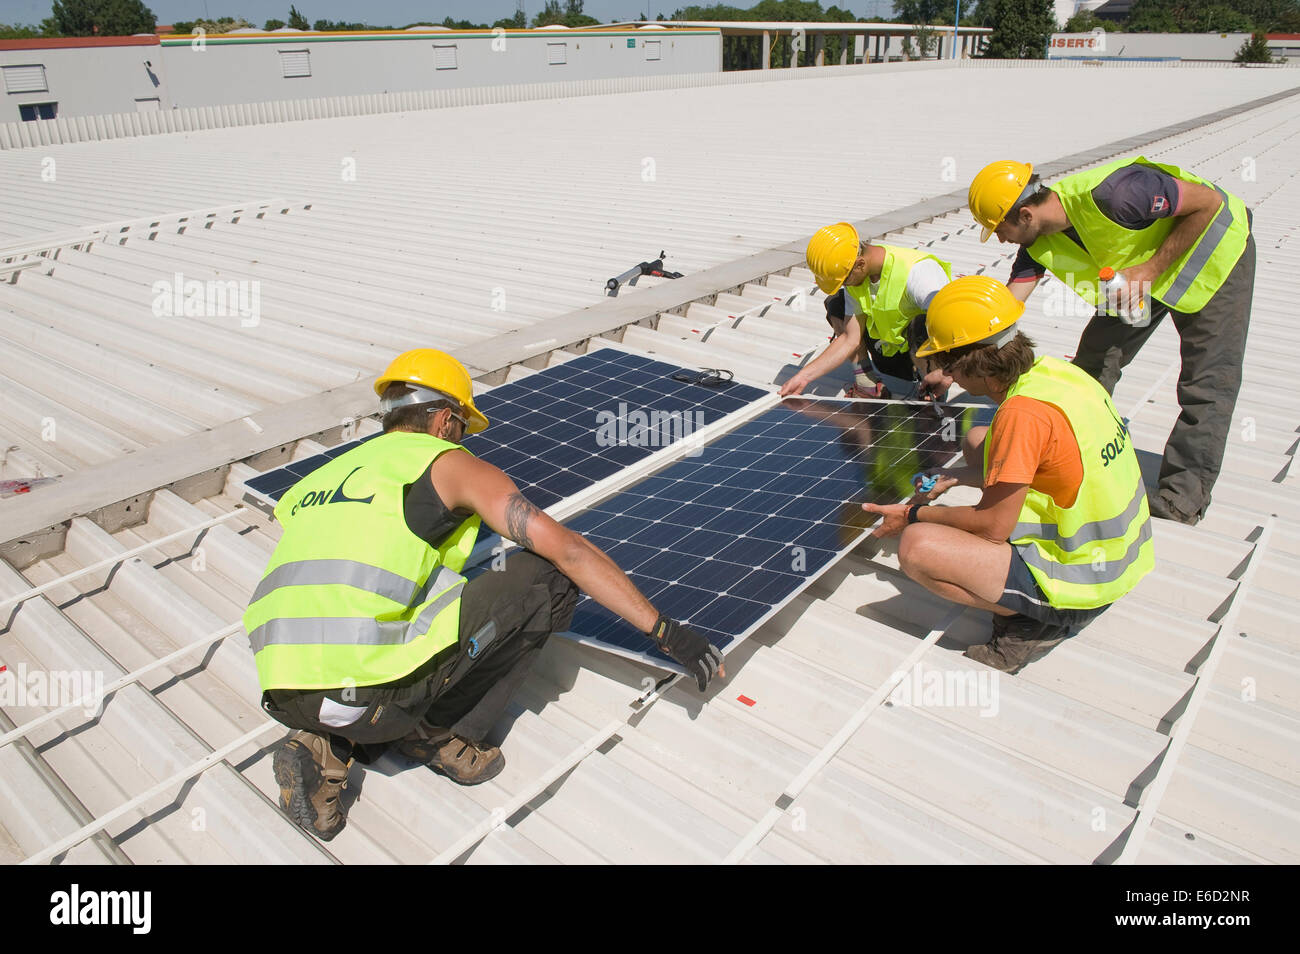 Installation of a solar system on a commercial building, Berlin, Germany - Stock Image